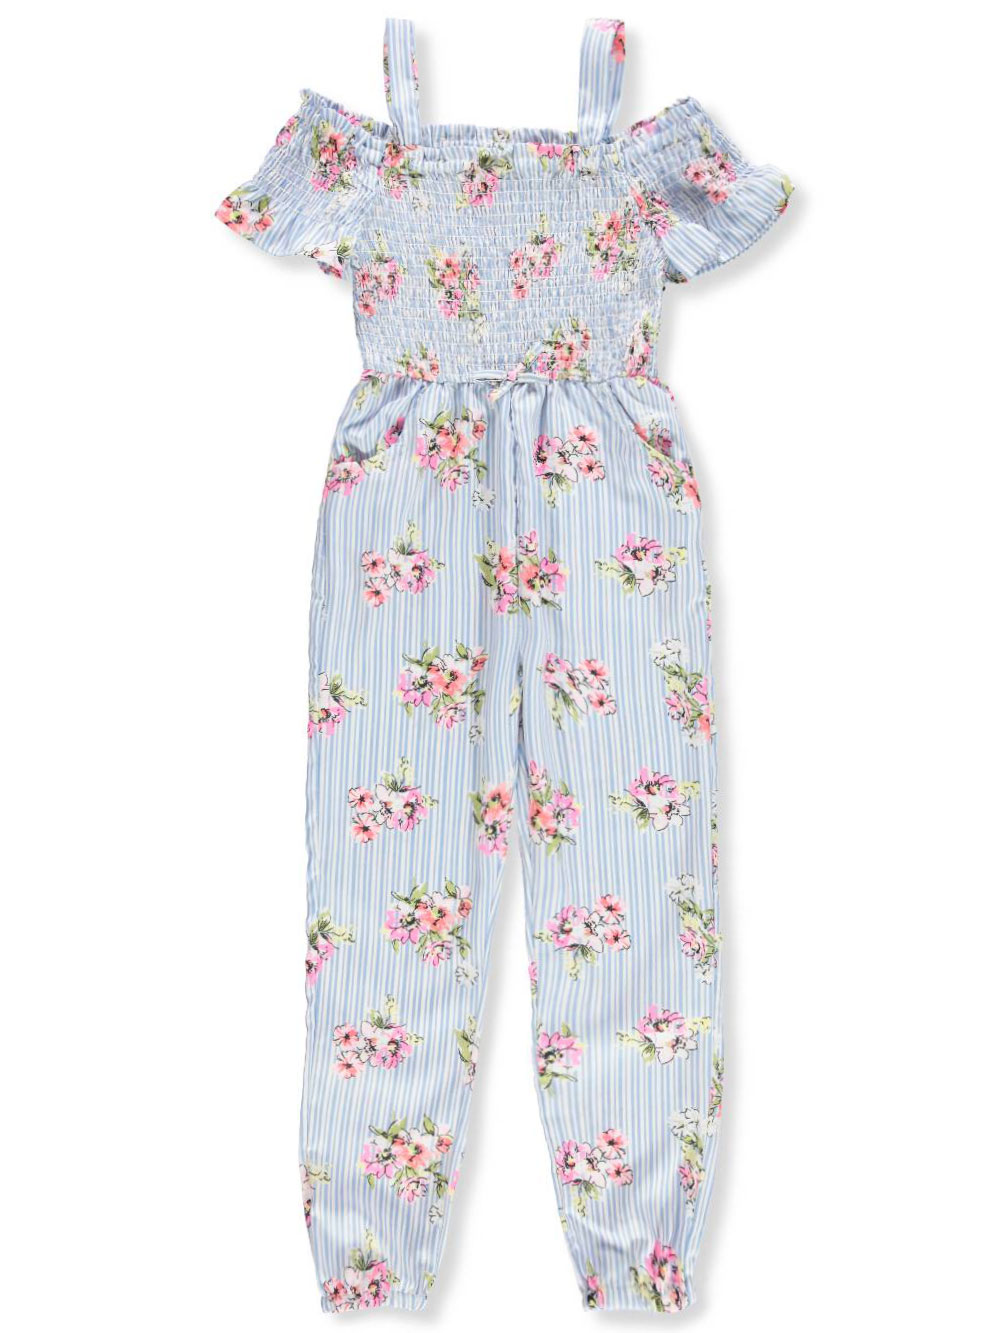 Size 5-6 Rompers Jumpsuits for Girls